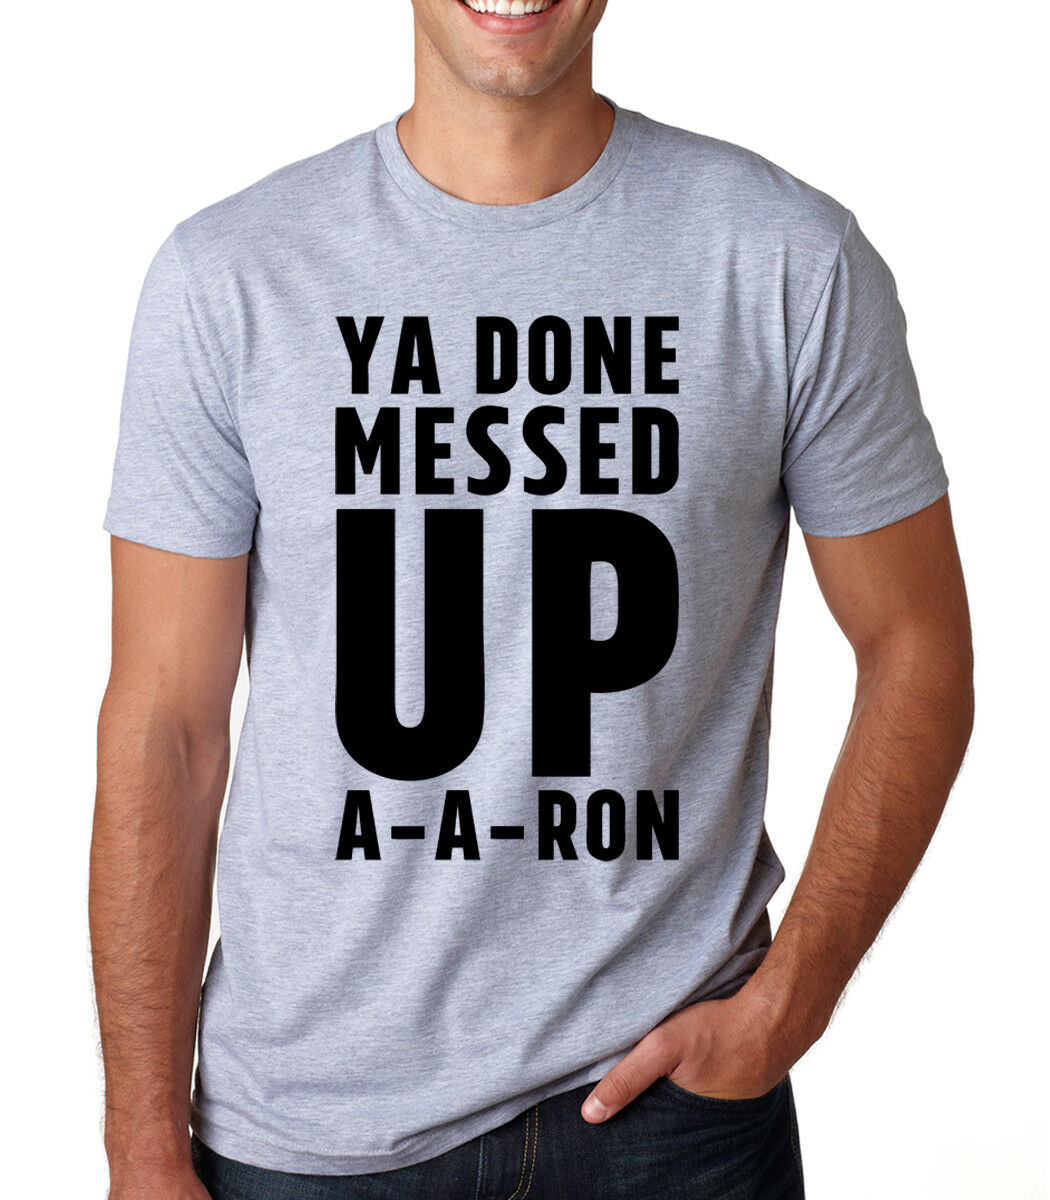 YA DONE MESSED UP A - A - RON funny key peele aaron meme joke Crew Neck T-ShirtGift Print T-shirt,Hip Hop Tee shirt NEW ARRIVAL image